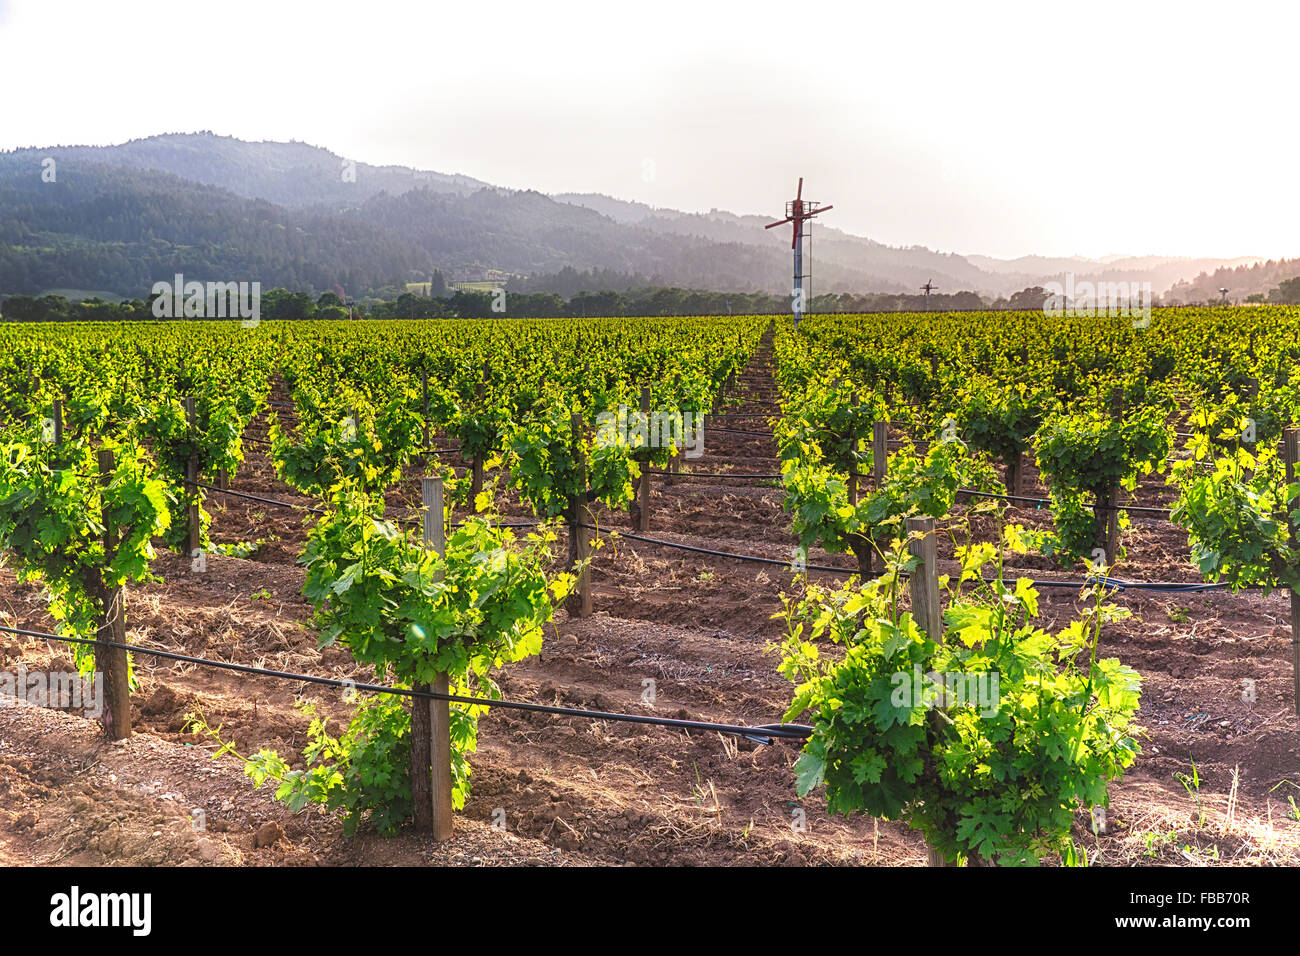 Row of Grapevine with Drip Irrigation and Wind Machine, Napa Valley California - Stock Image